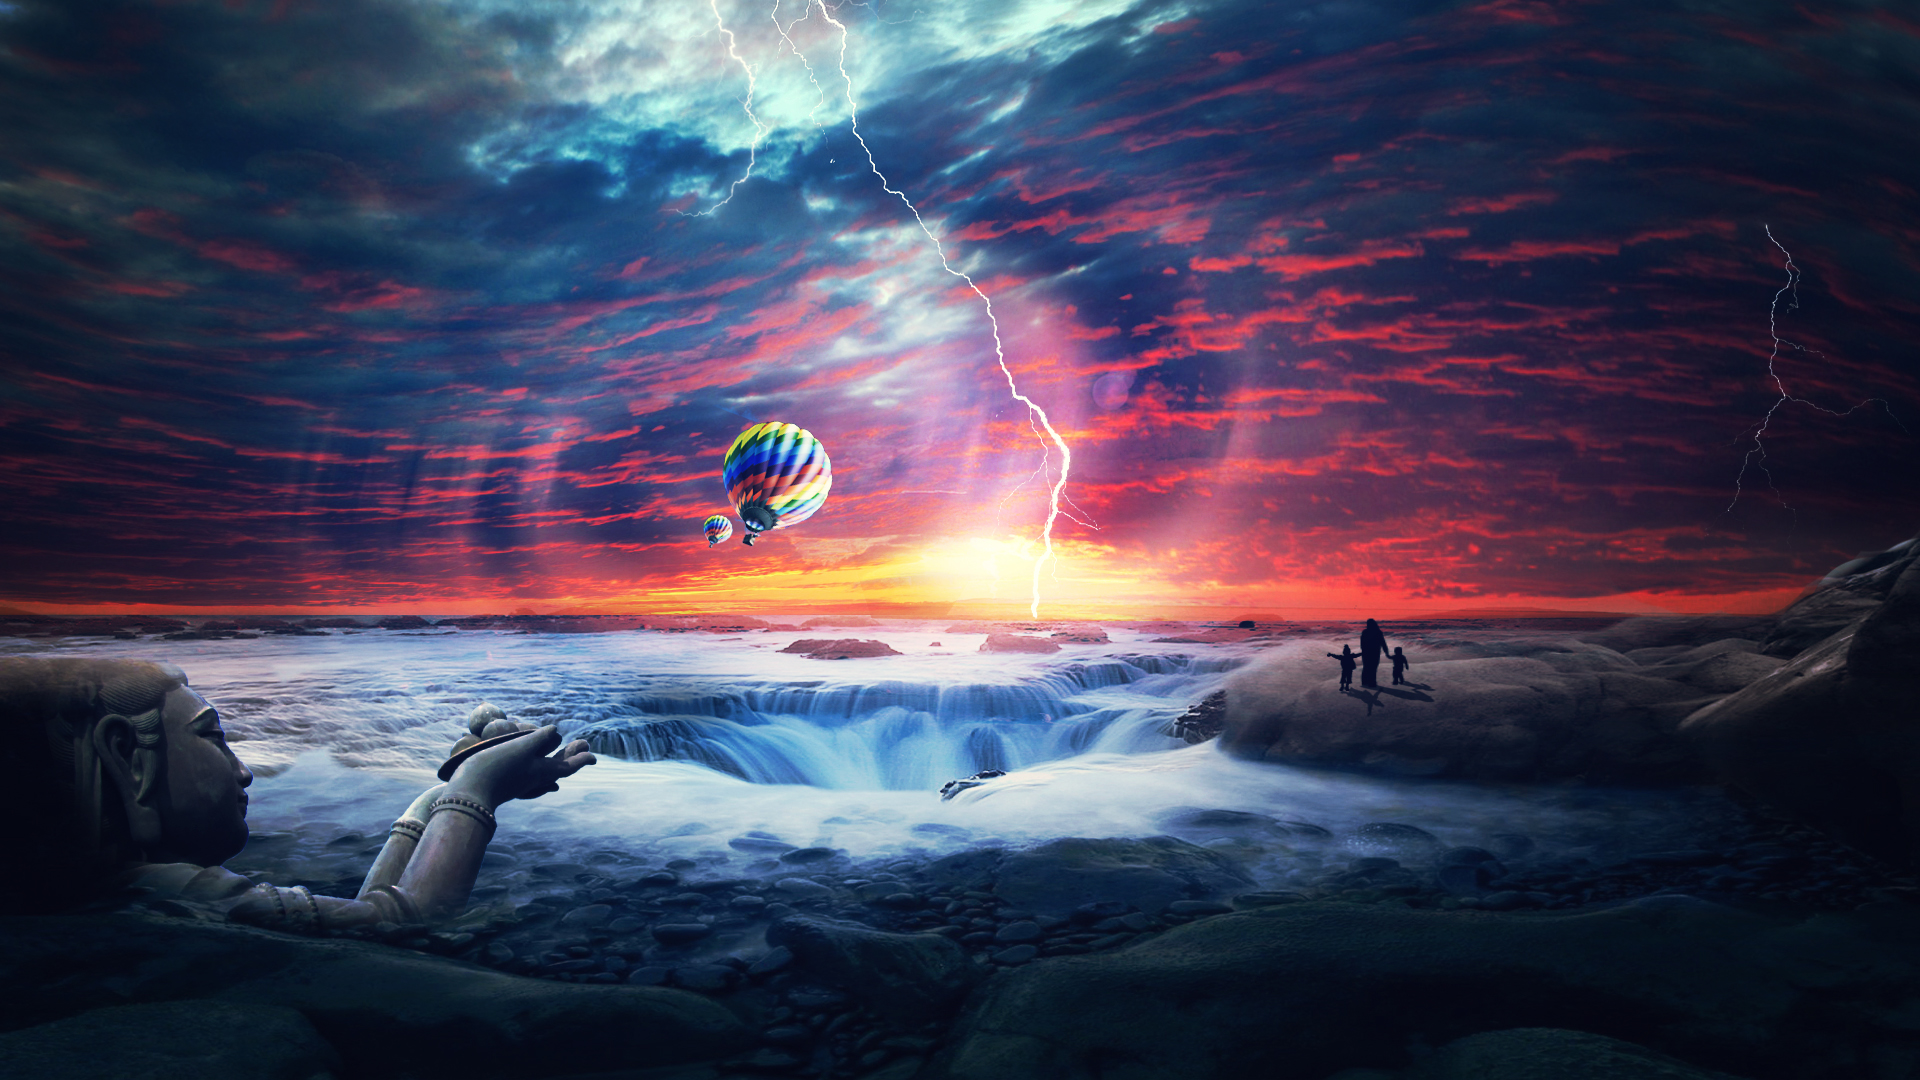 HD Wallpapers Heaven Sunset Sea Airballons